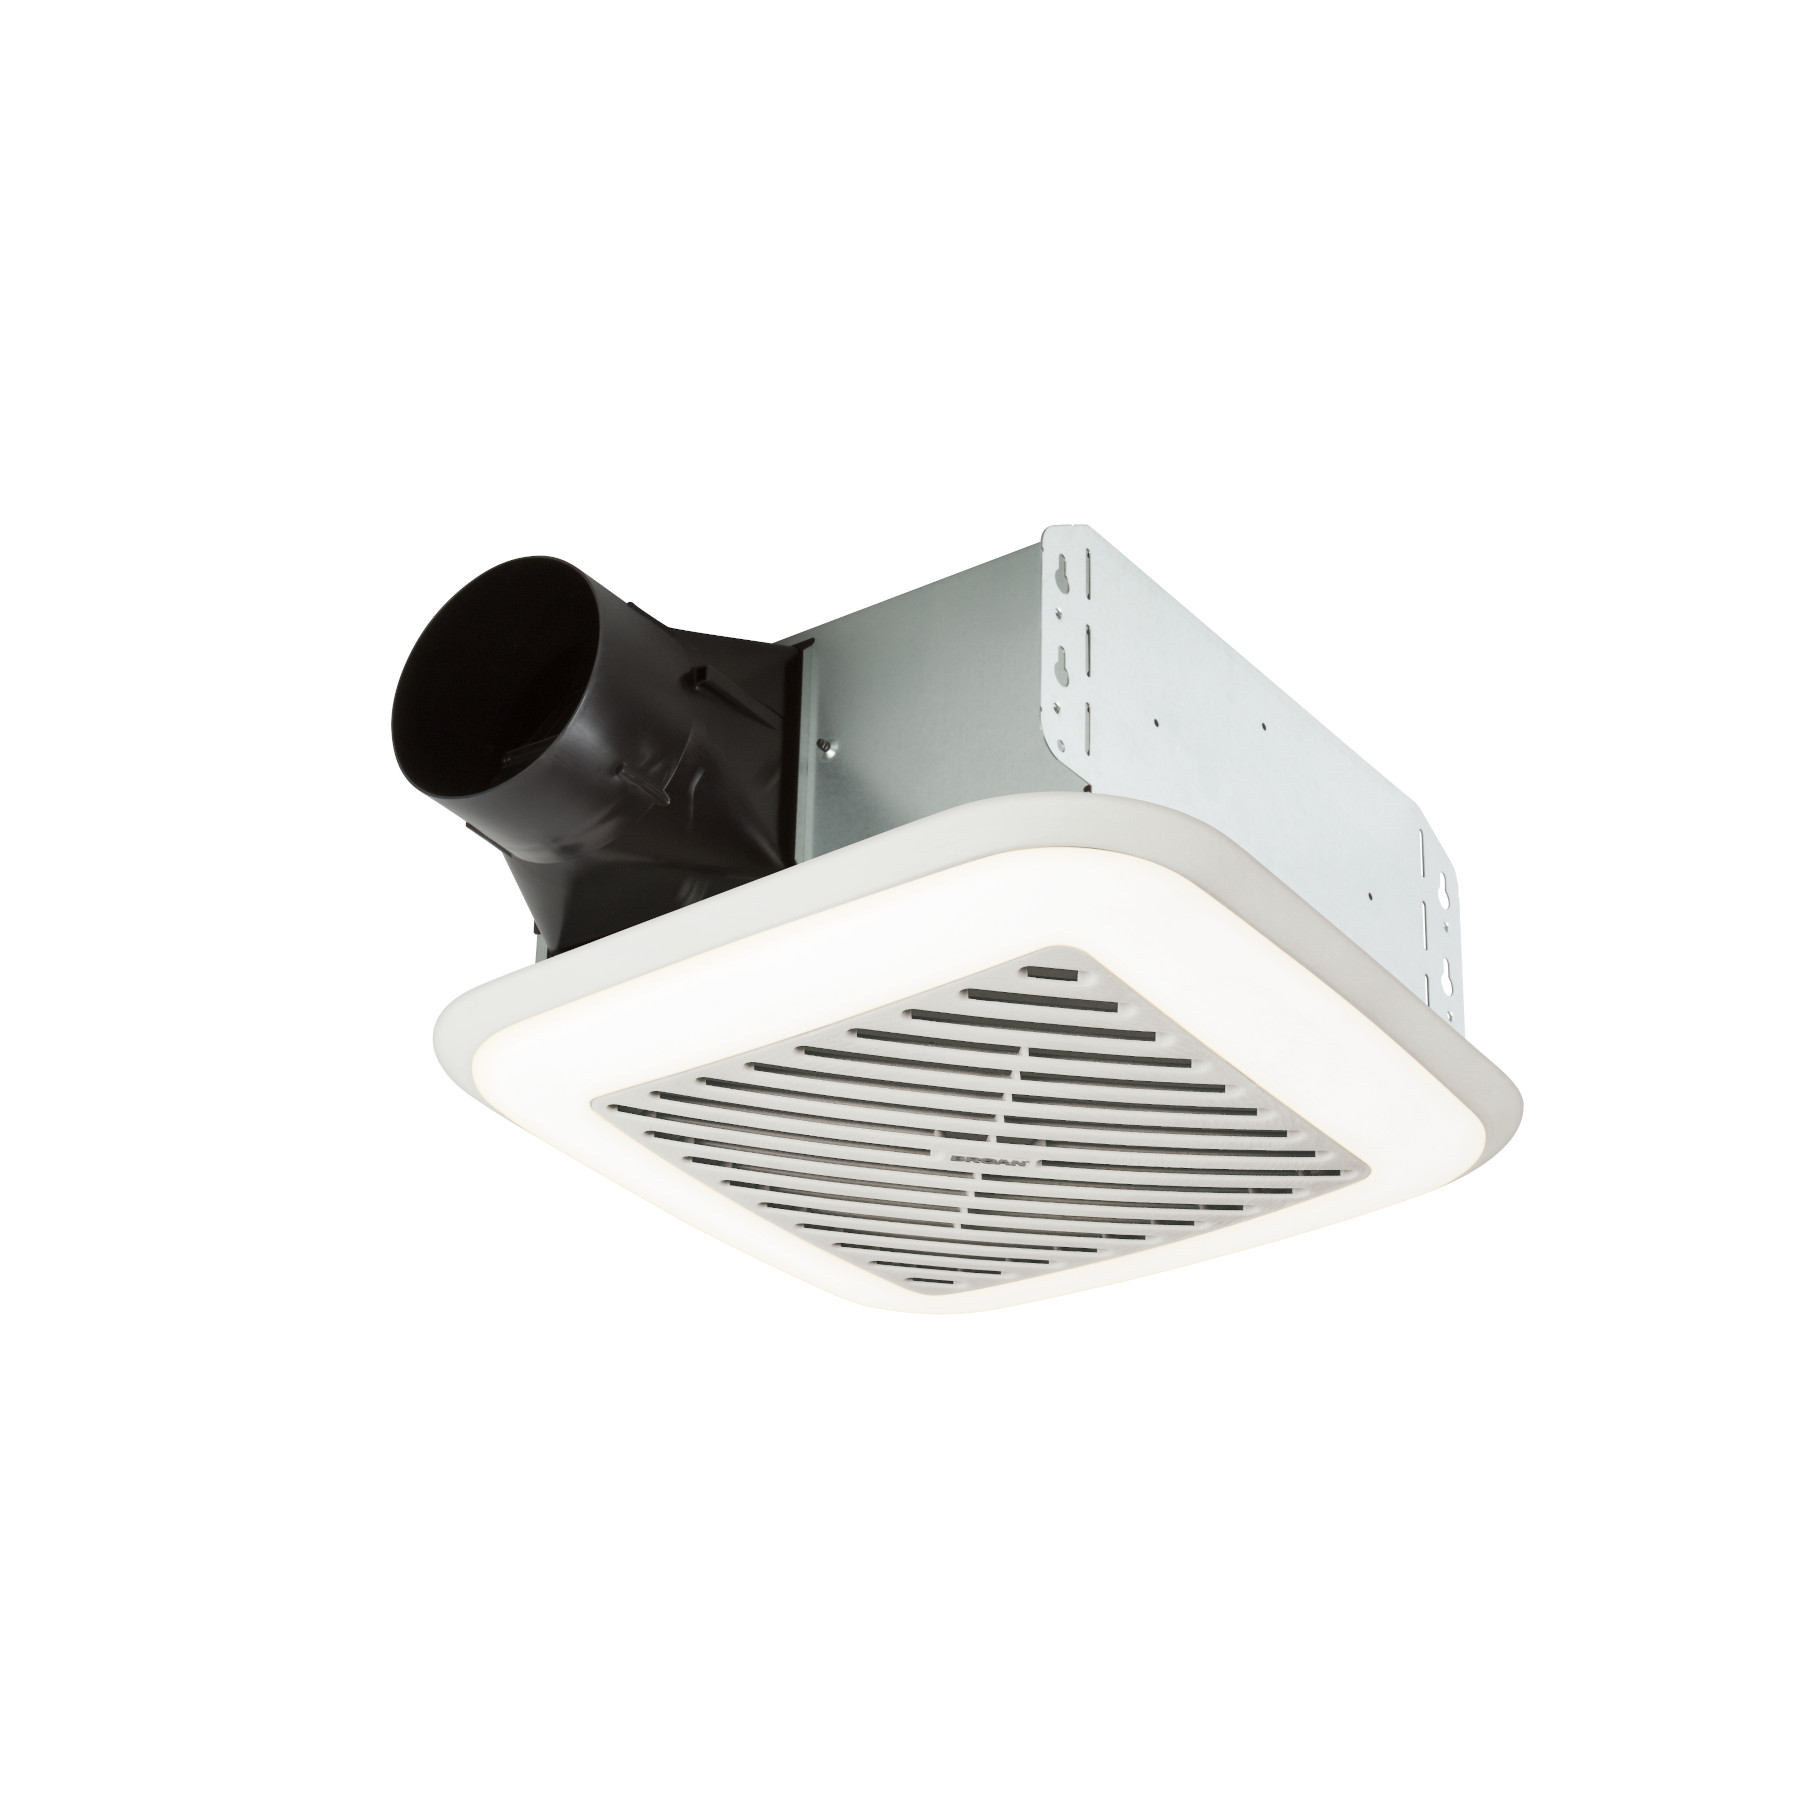 Broan® 110 CFM Ventilation Fan with Soft Surround LED Lighting Technology, 1.5 Sones, ENERGY STAR®